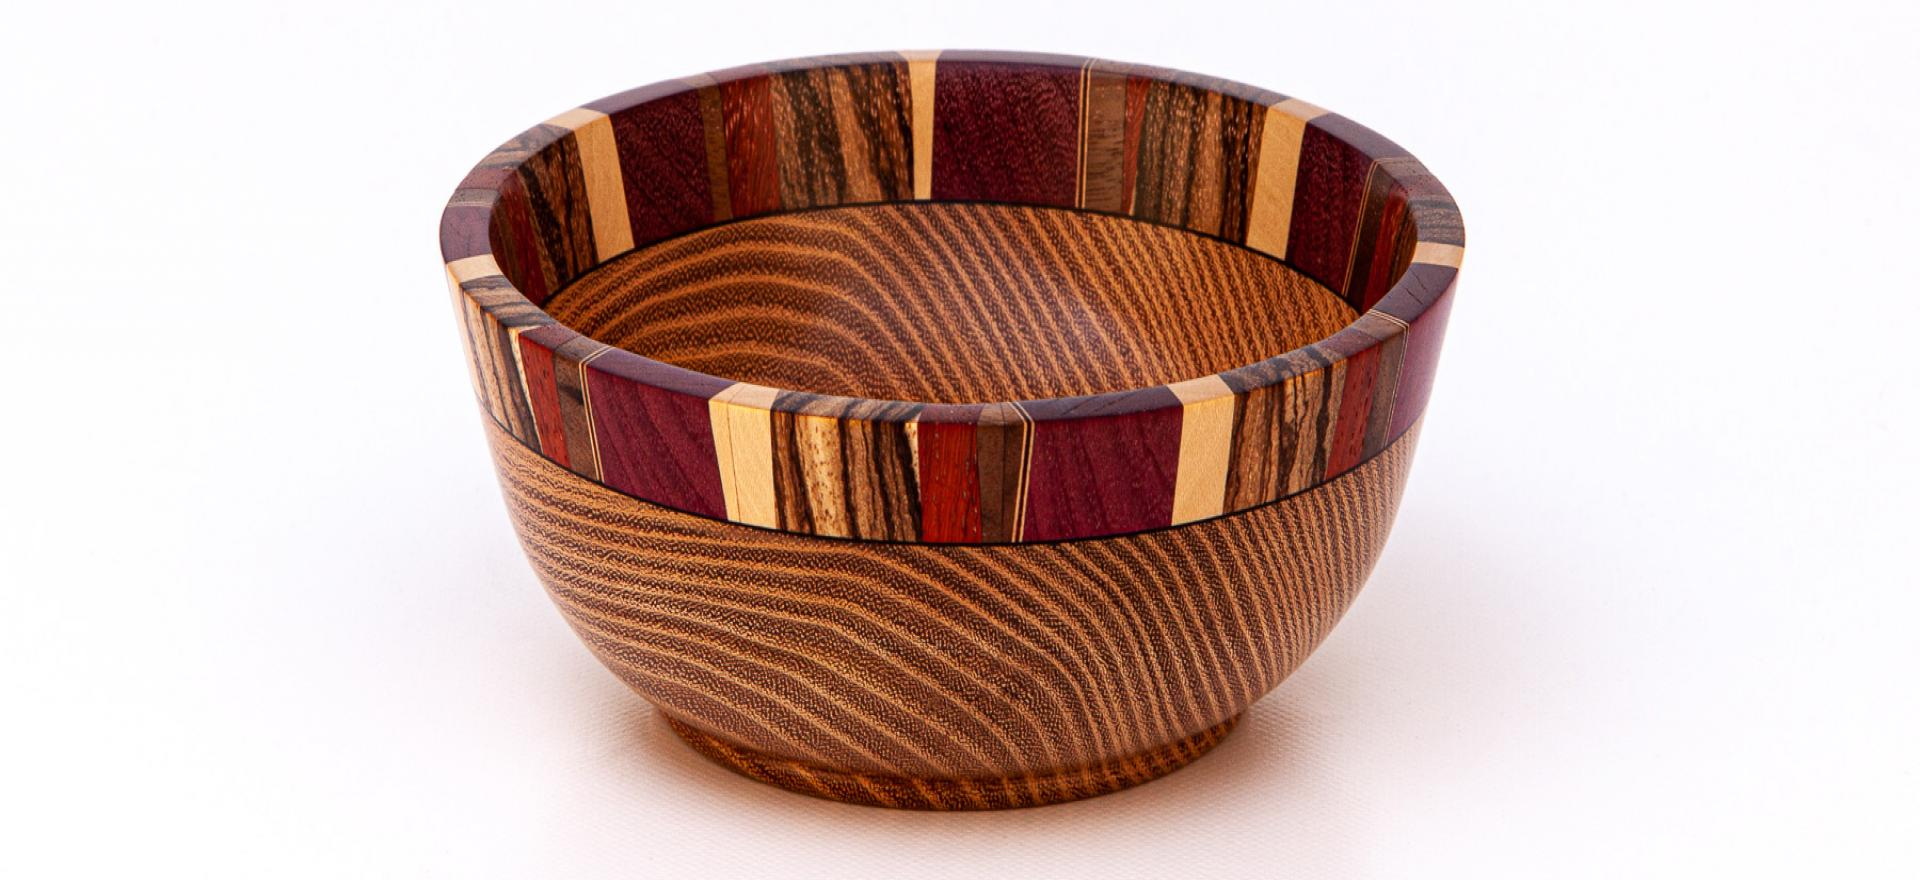 butterwood-bowl-cedar-segmented-rim-16cm